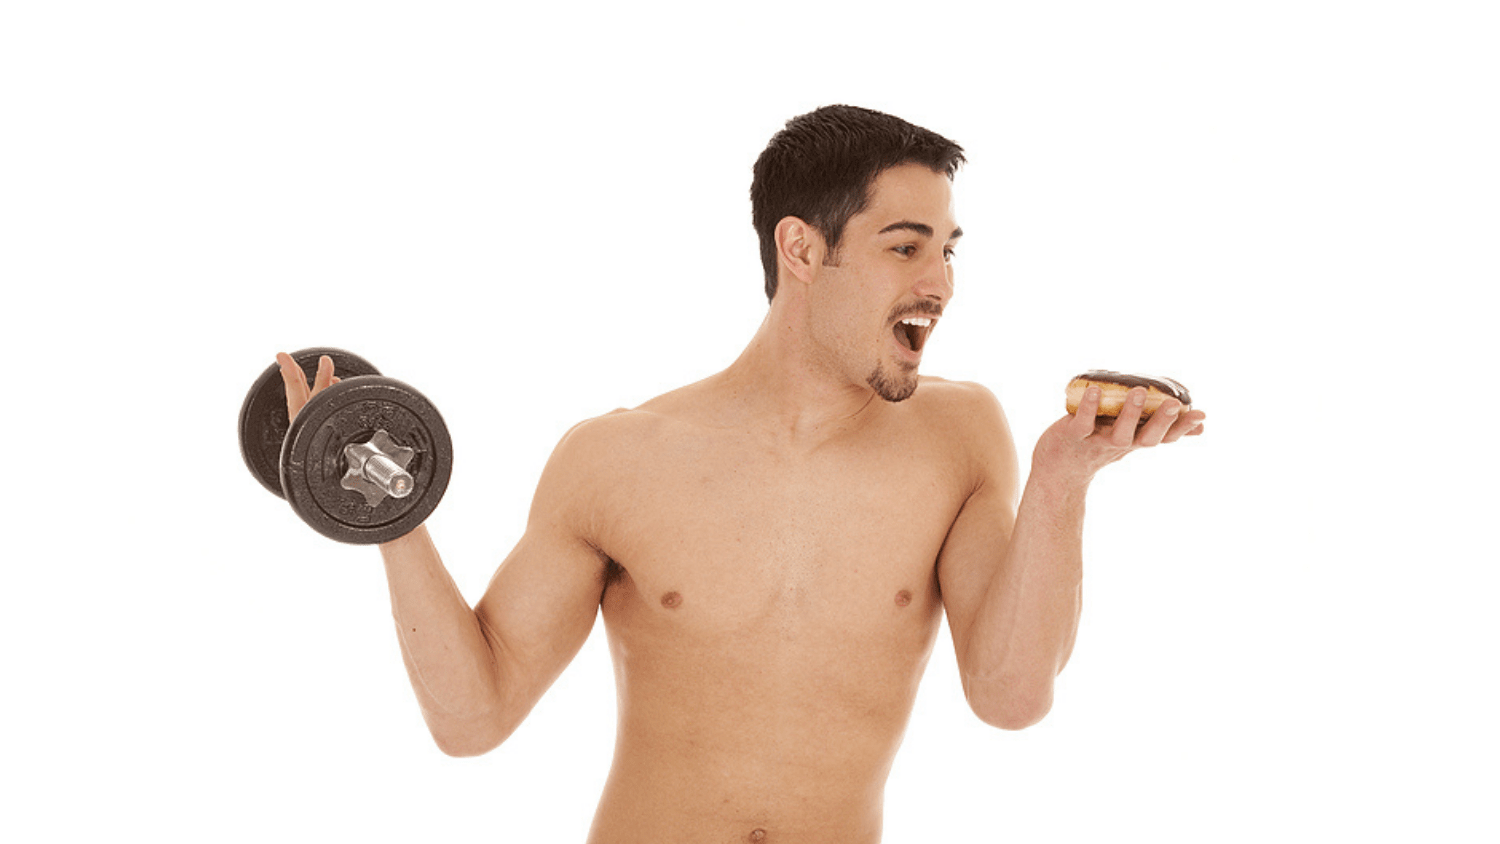 4 Ways To Gain Weight And Build Muscle